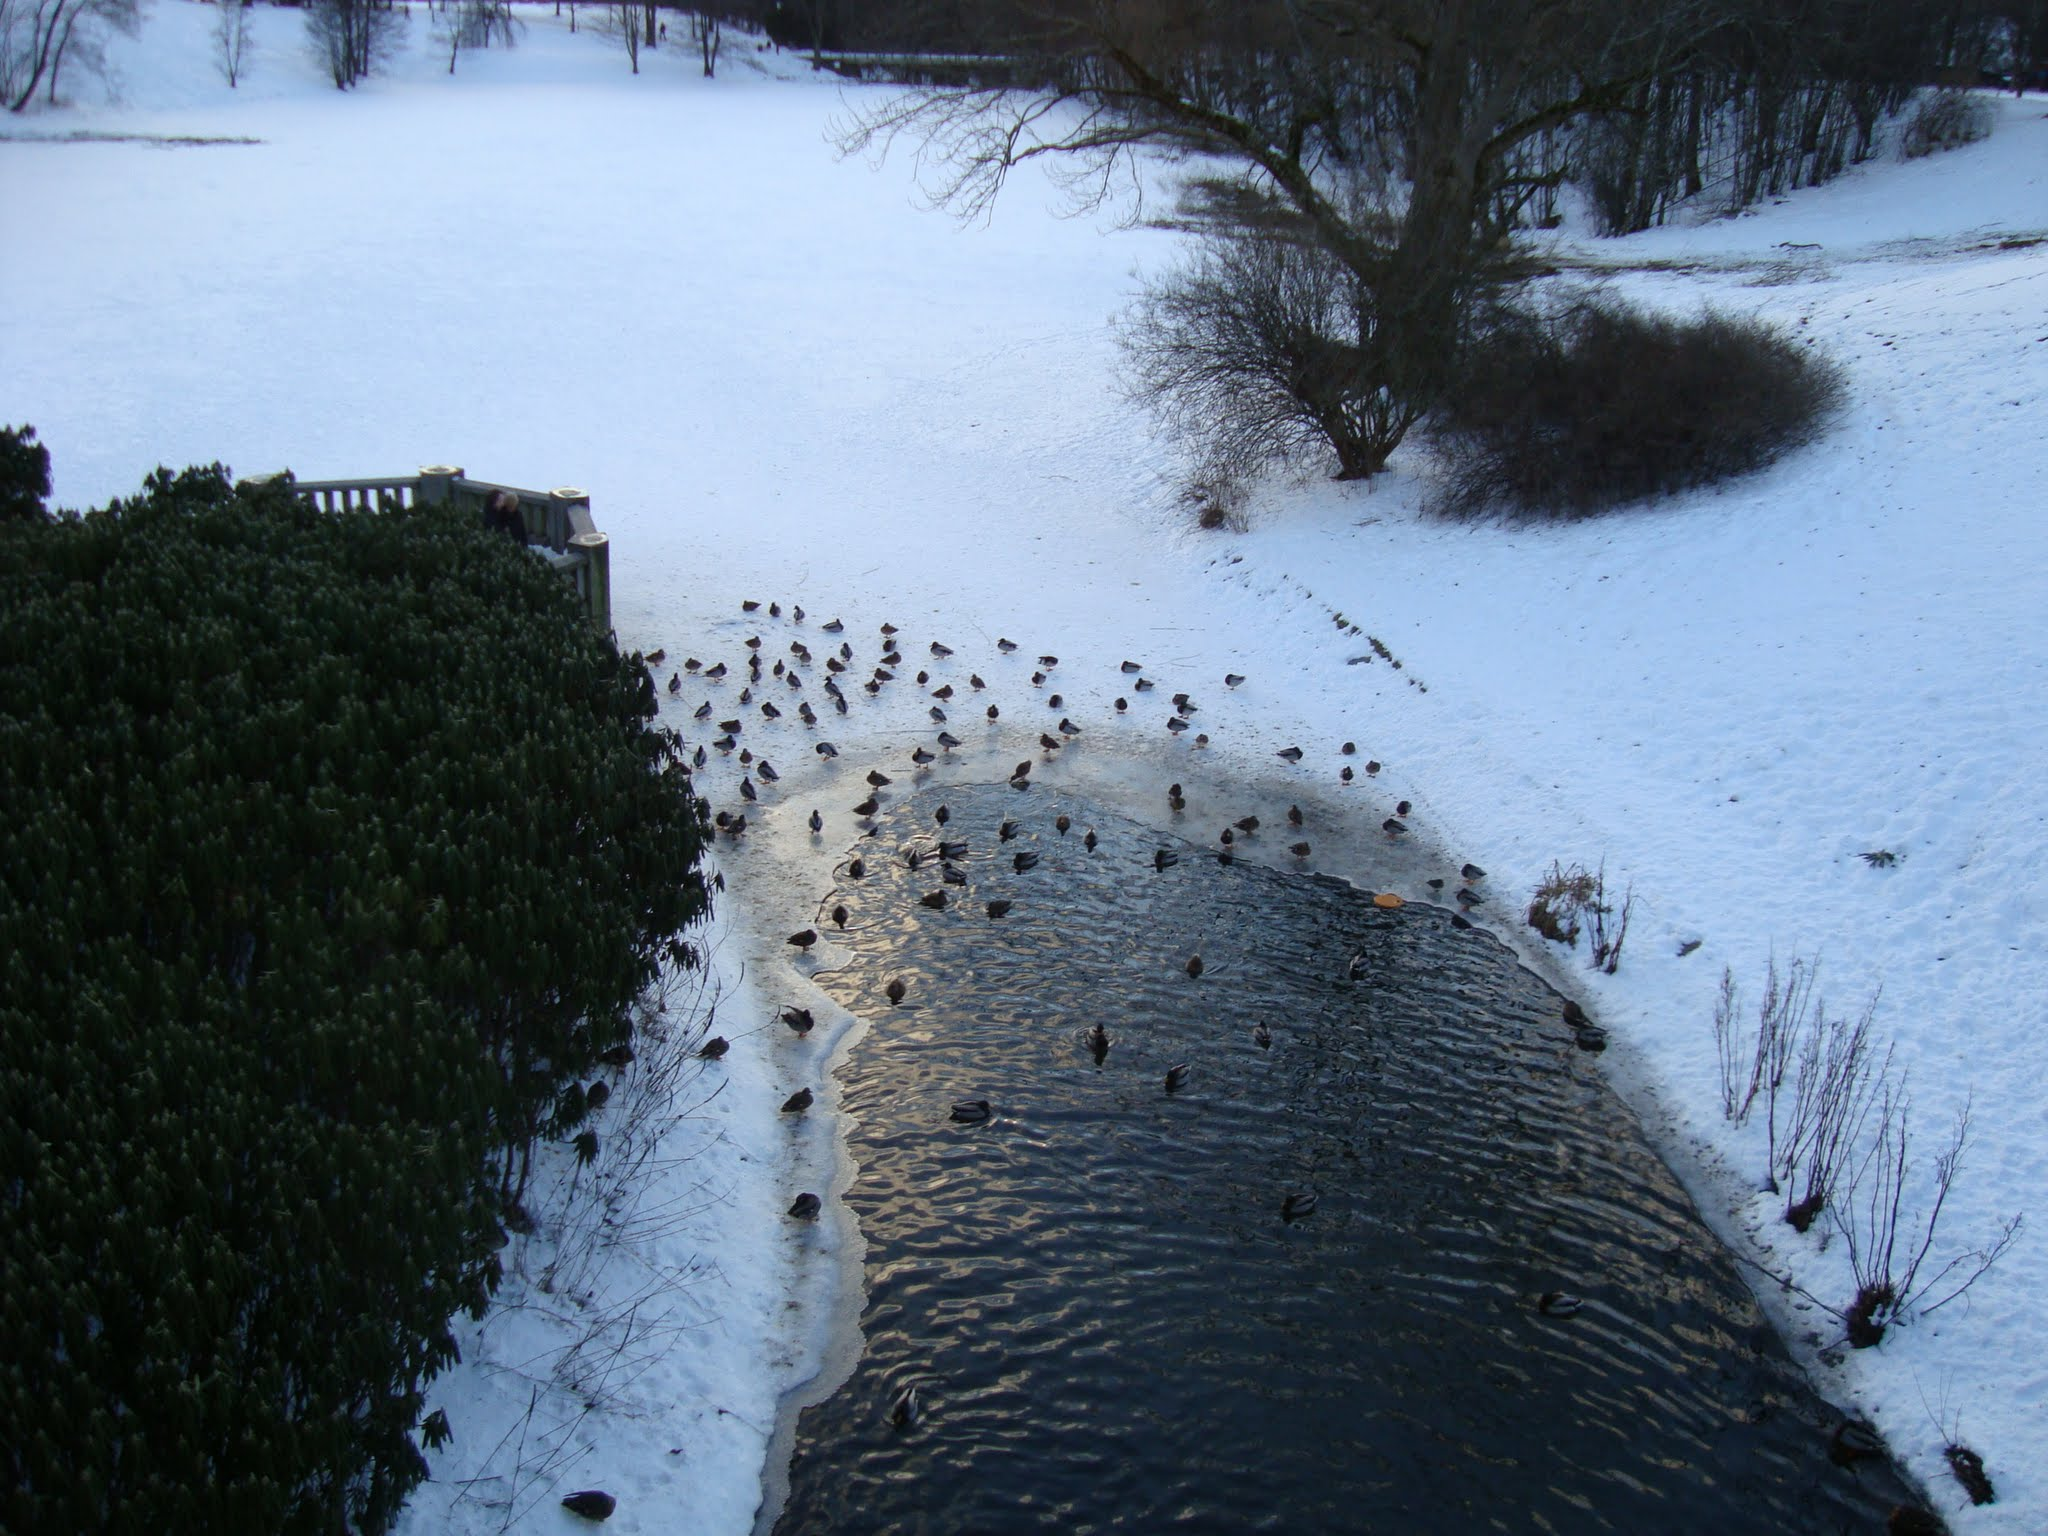 Photo: The ducks don't mind the cold